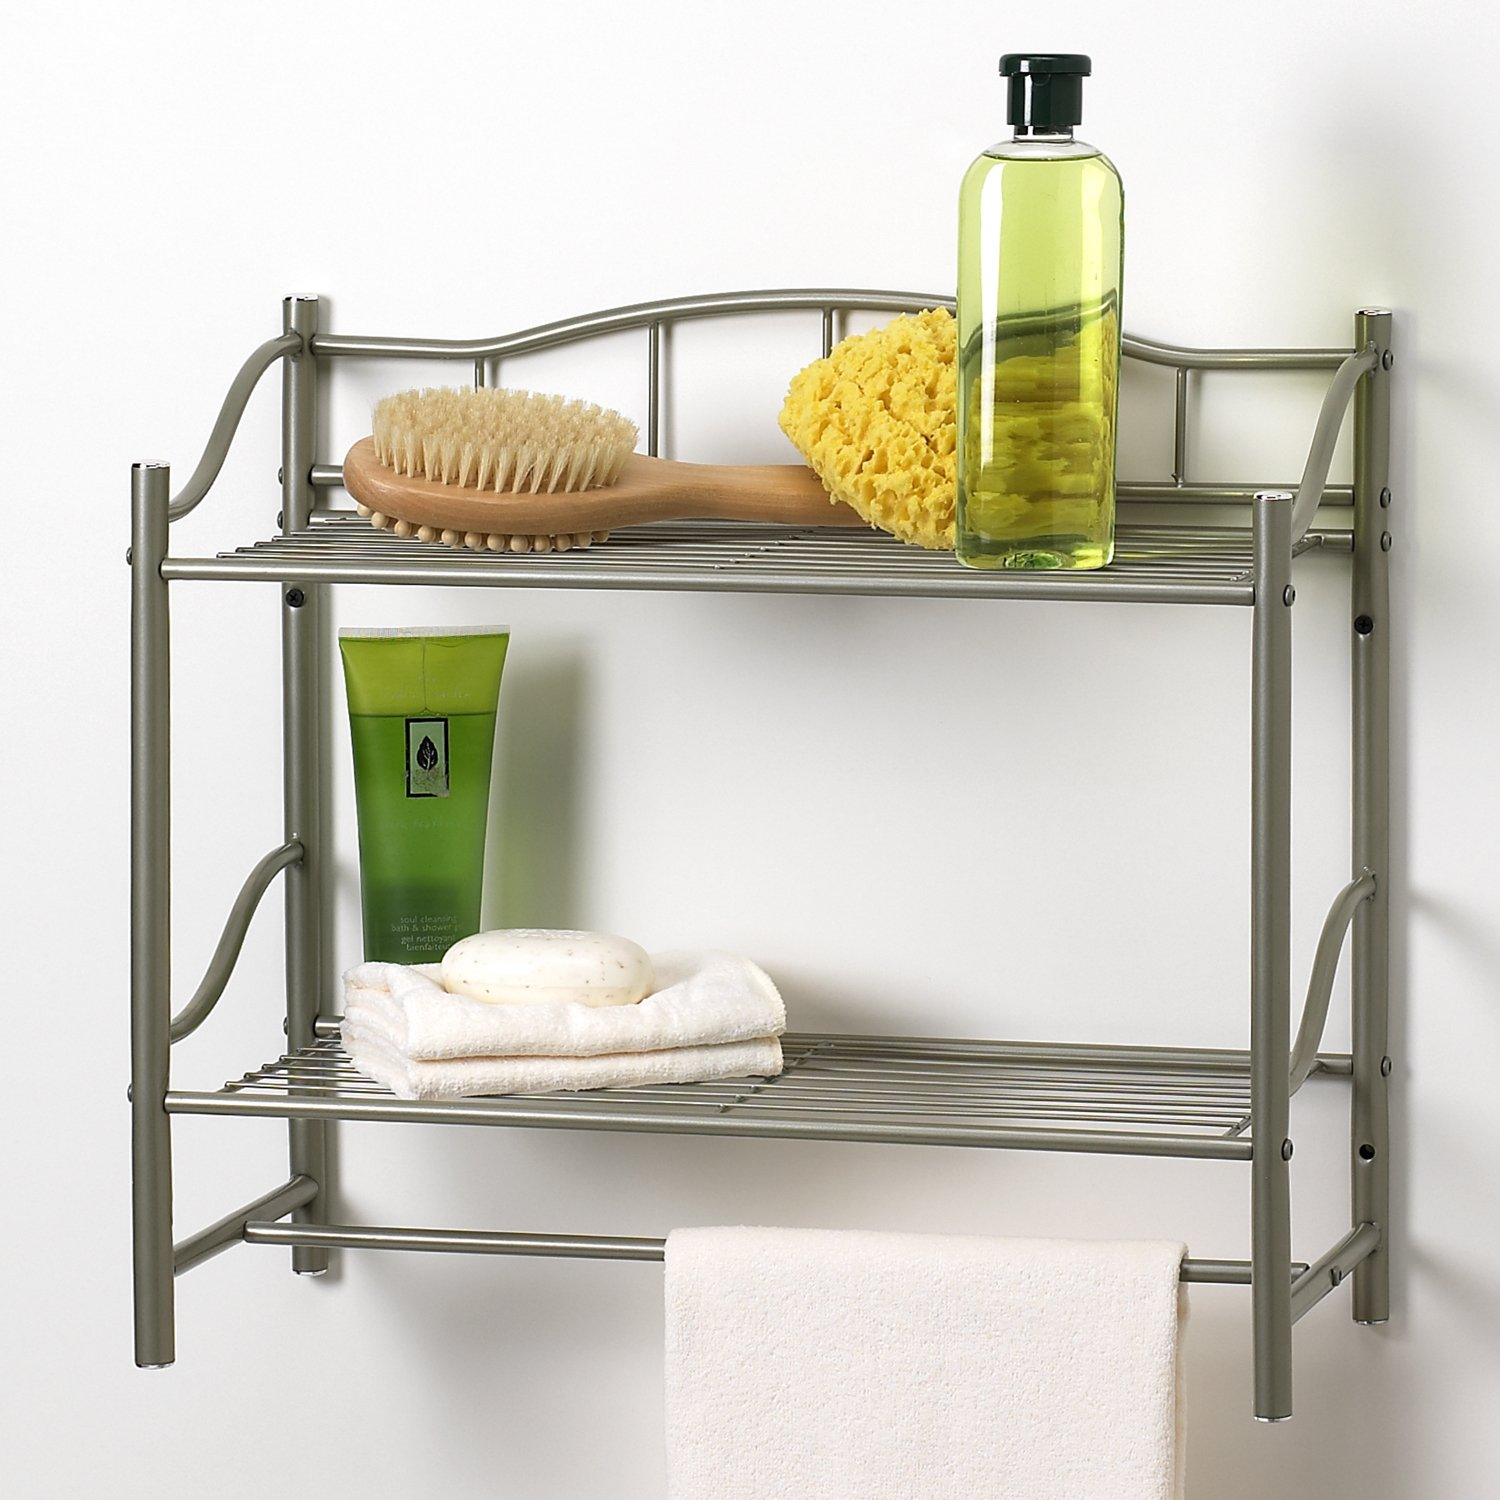 Creative Bath Products Complete Collection 2 Shelf Wall Organizer with Towel Bar, Pearl Nickel finish